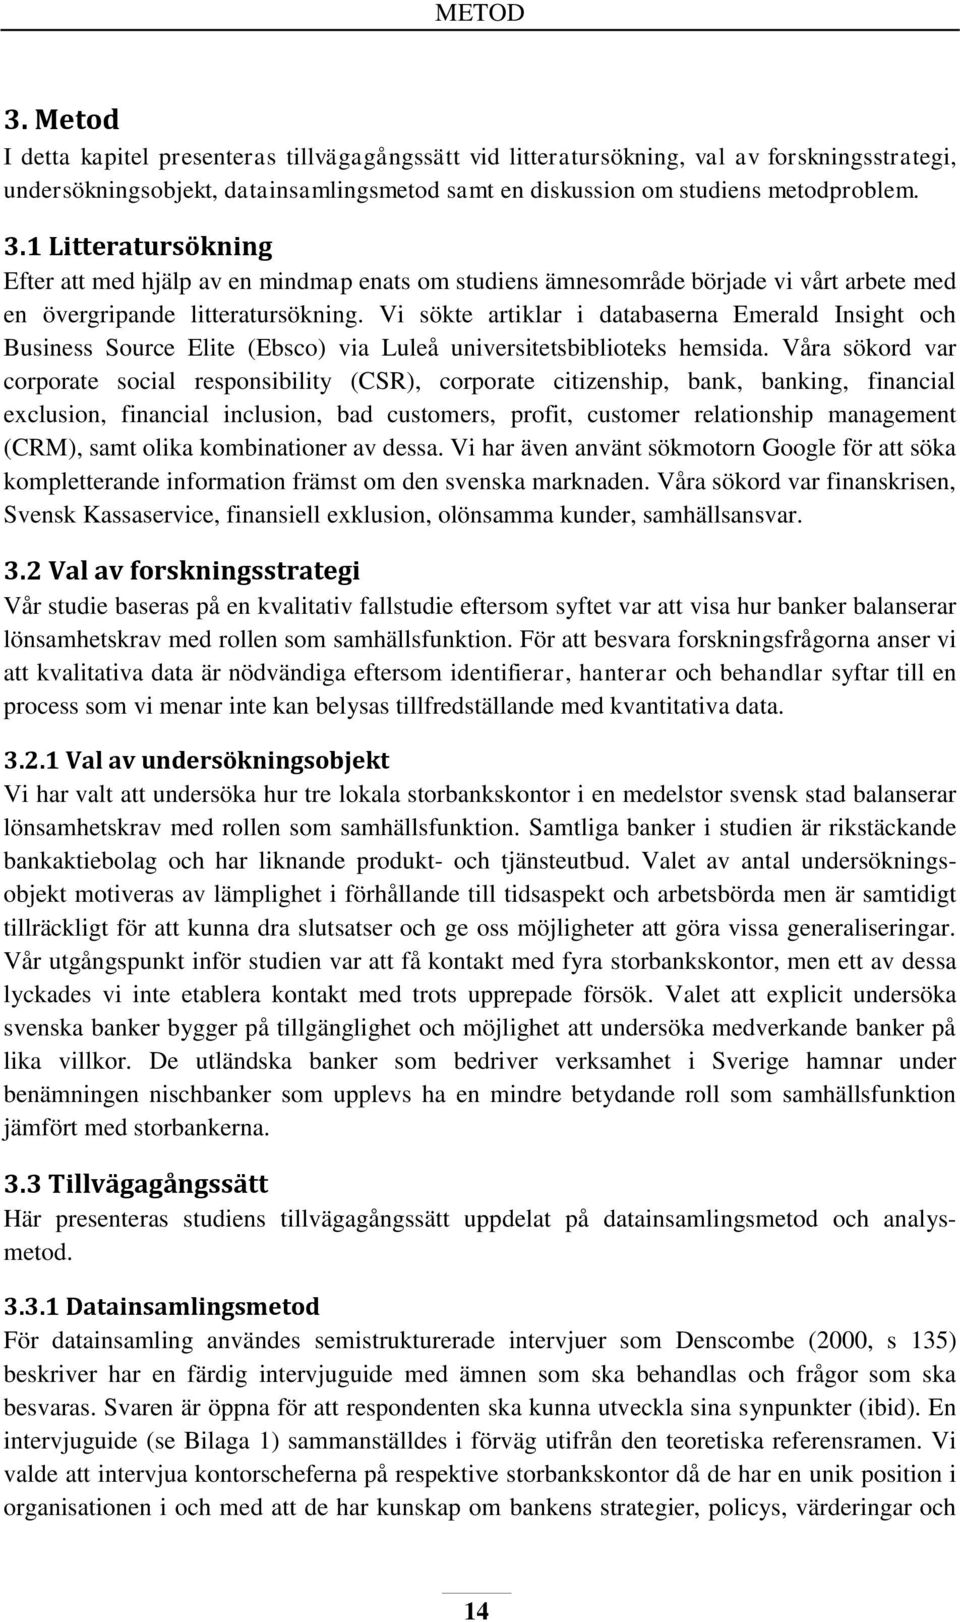 Våra sökord var corporate social responsibility (CSR), corporate citizenship, bank, banking, financial exclusion, financial inclusion, bad customers, profit, customer relationship management (CRM),